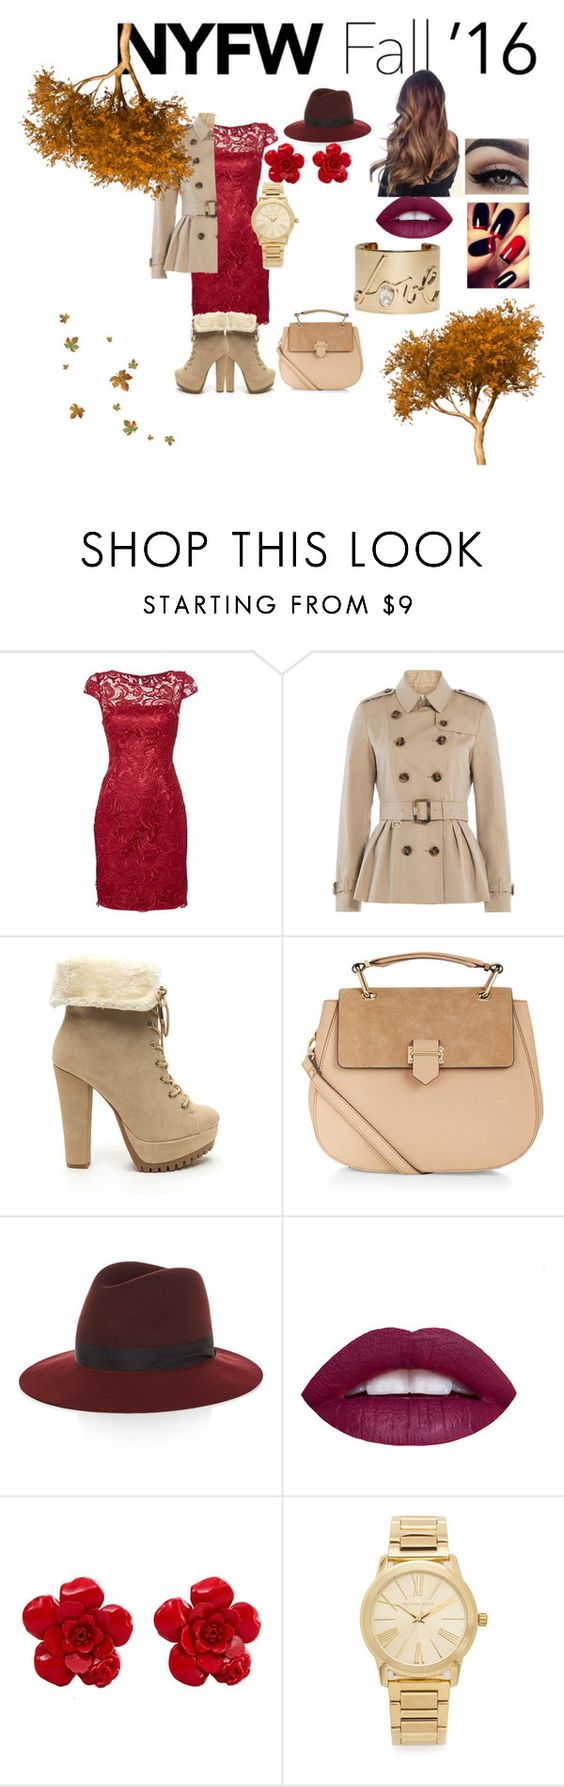 """""""Untitled #39"""" by shycandypie ❤ liked on Polyvore featuring Adrianna Papell, Burberry, Accessorize, rag & bone, Chanel, Michael Kors, Lanvin, women's clothing, women and female"""